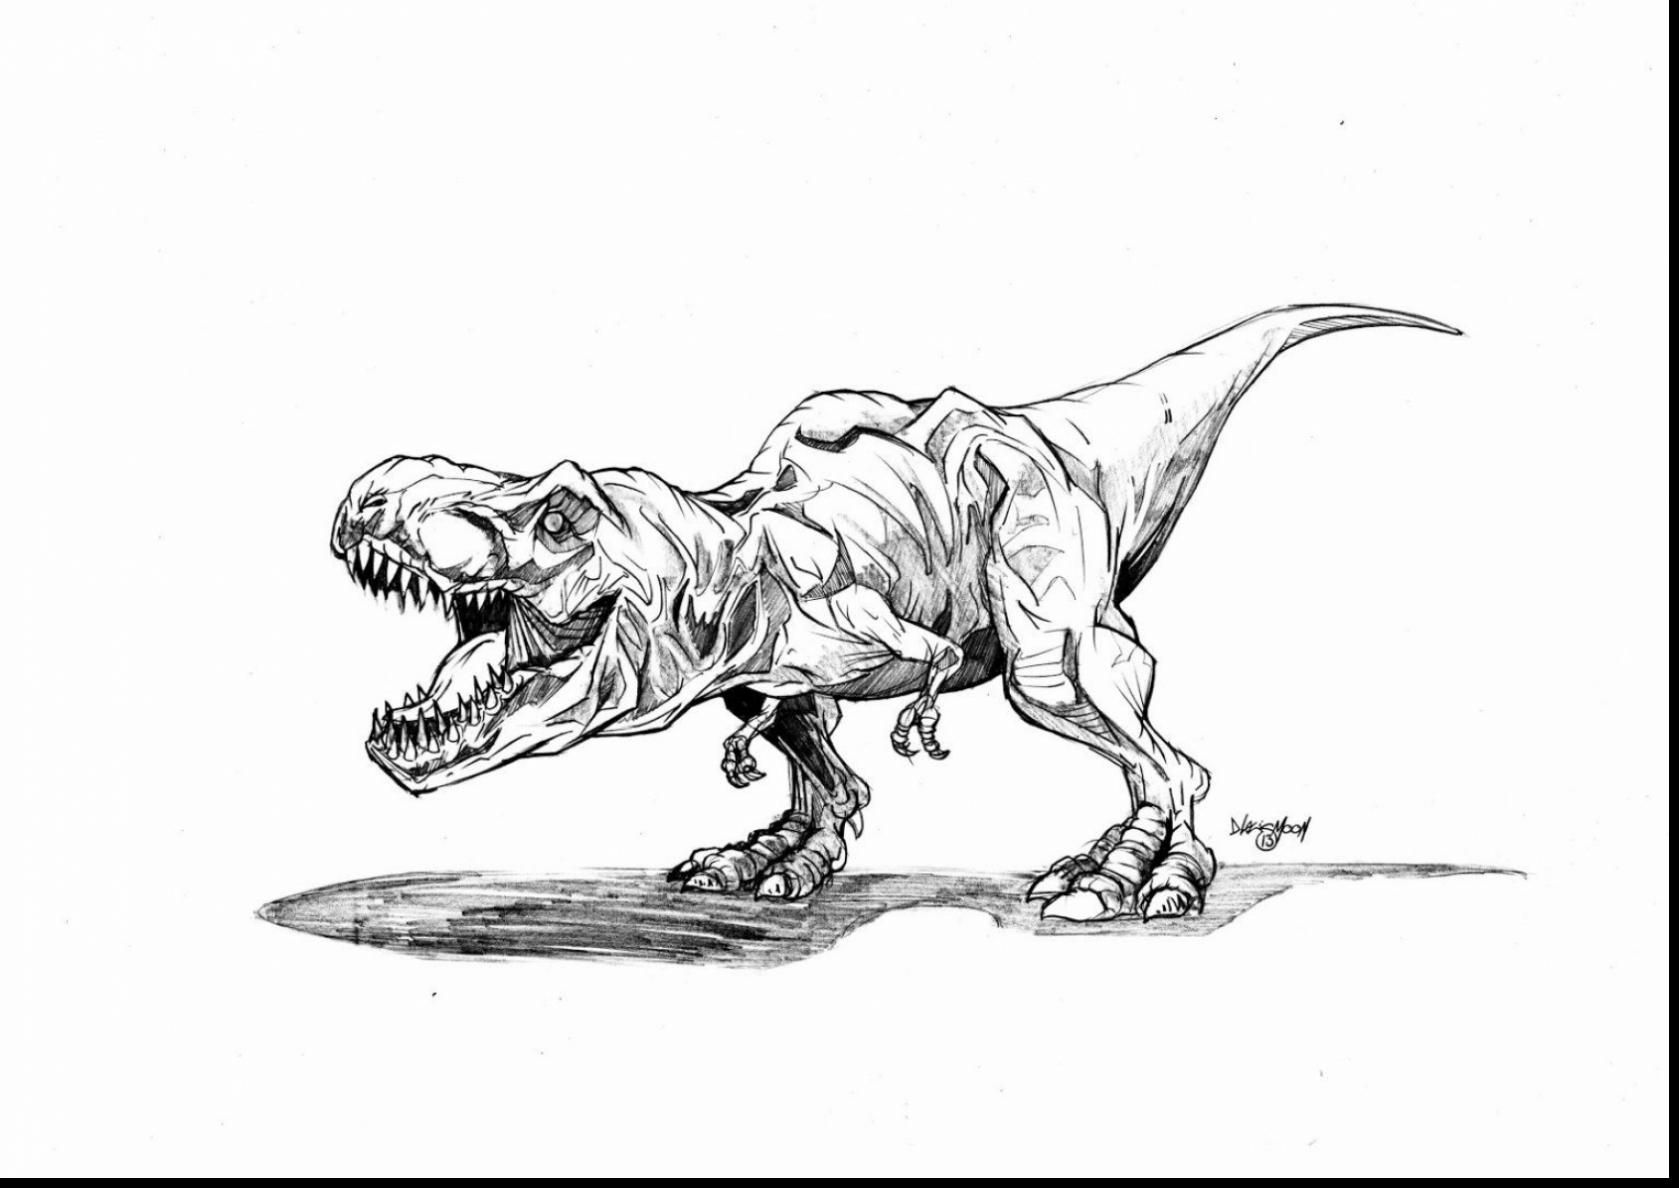 Magnificent Jurassic Park Rex Coloring Pages With Velociraptor Coloring Page And Velociraptor Printable Coloring Pages Jpg 1679 1188